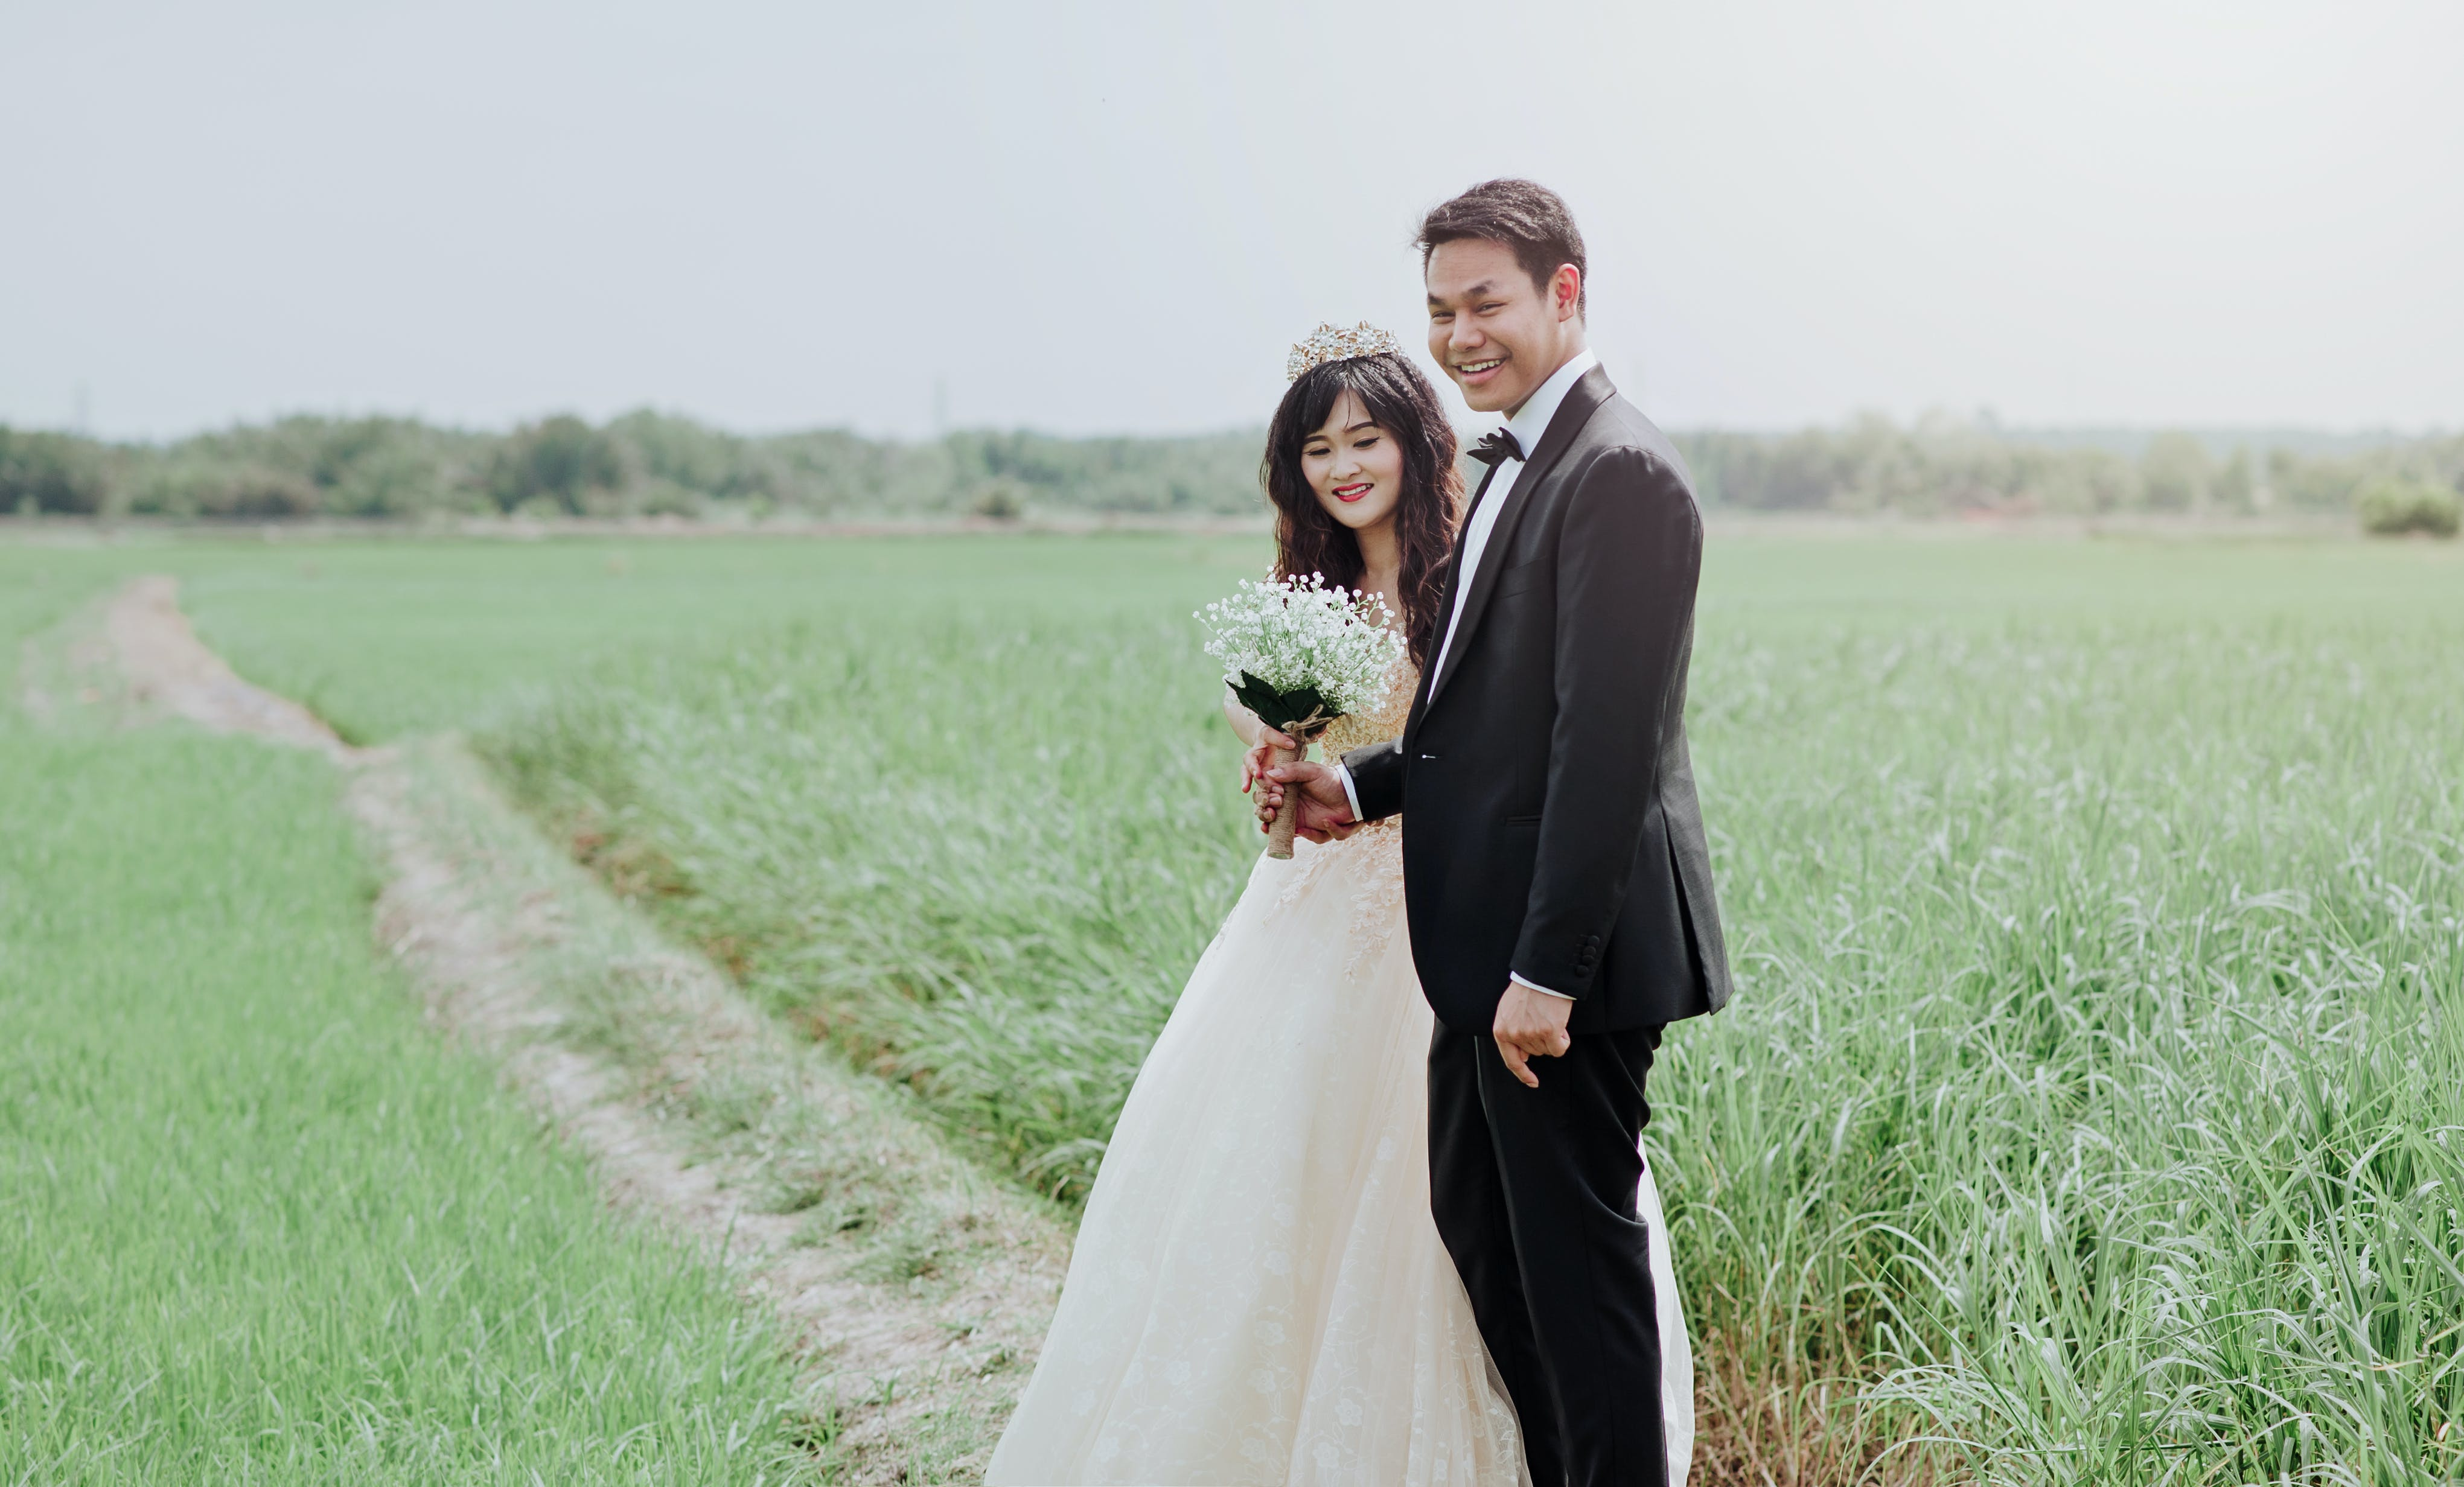 Man and Woman Wearing Wedding Dress and Suit in Between of Rice Fields